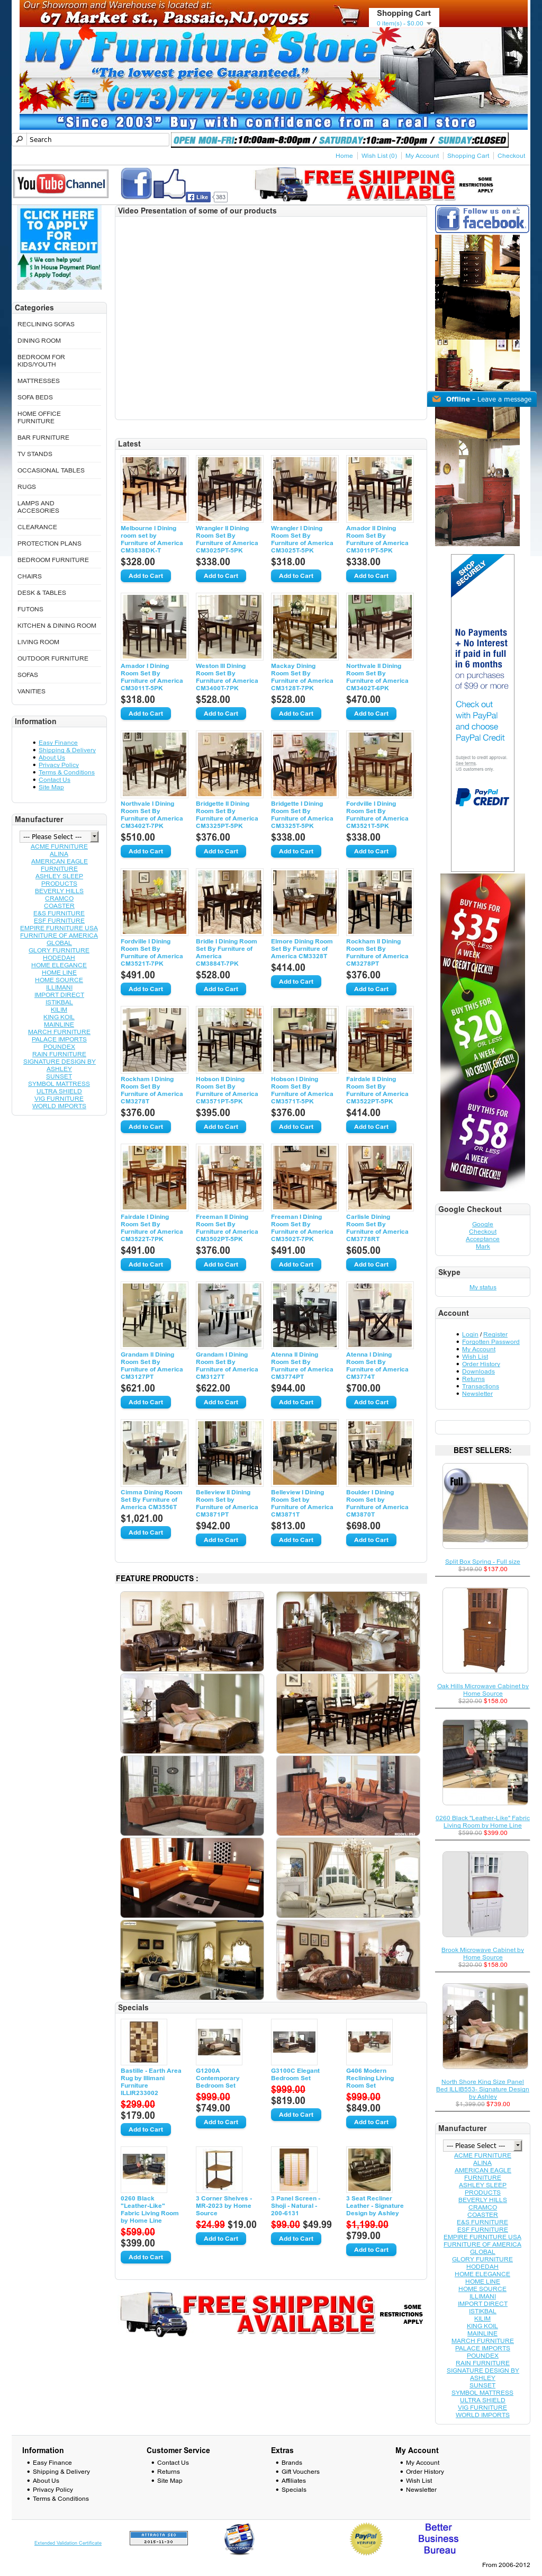 Myfurniturestore Competitors, Revenue and Employees - Owler Company